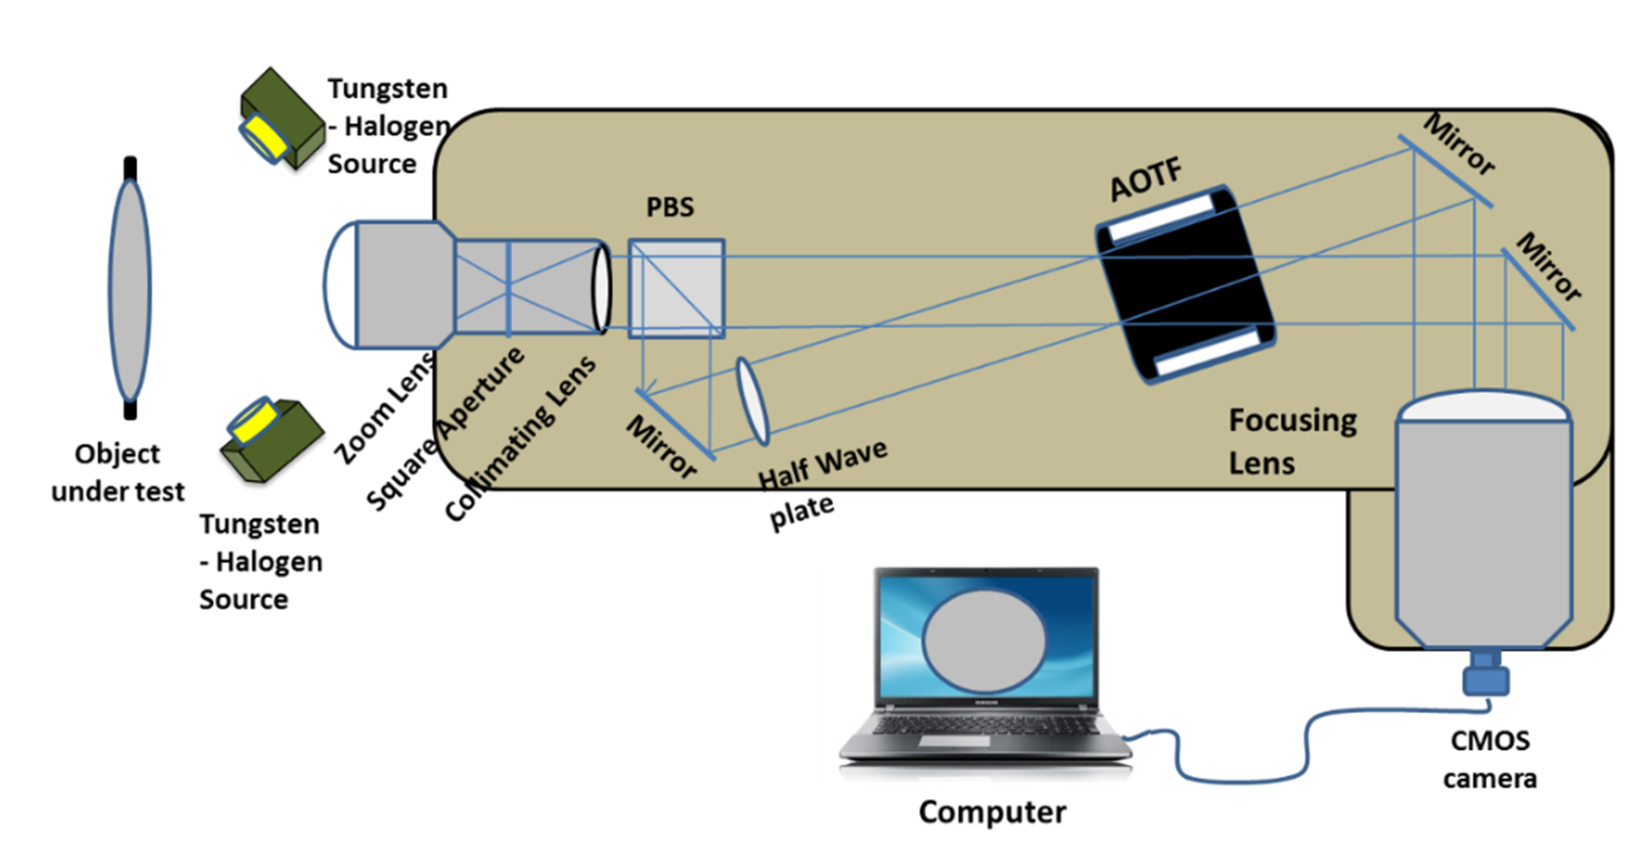 Acousto-optic tunable filter-based hyperspectral imaging system